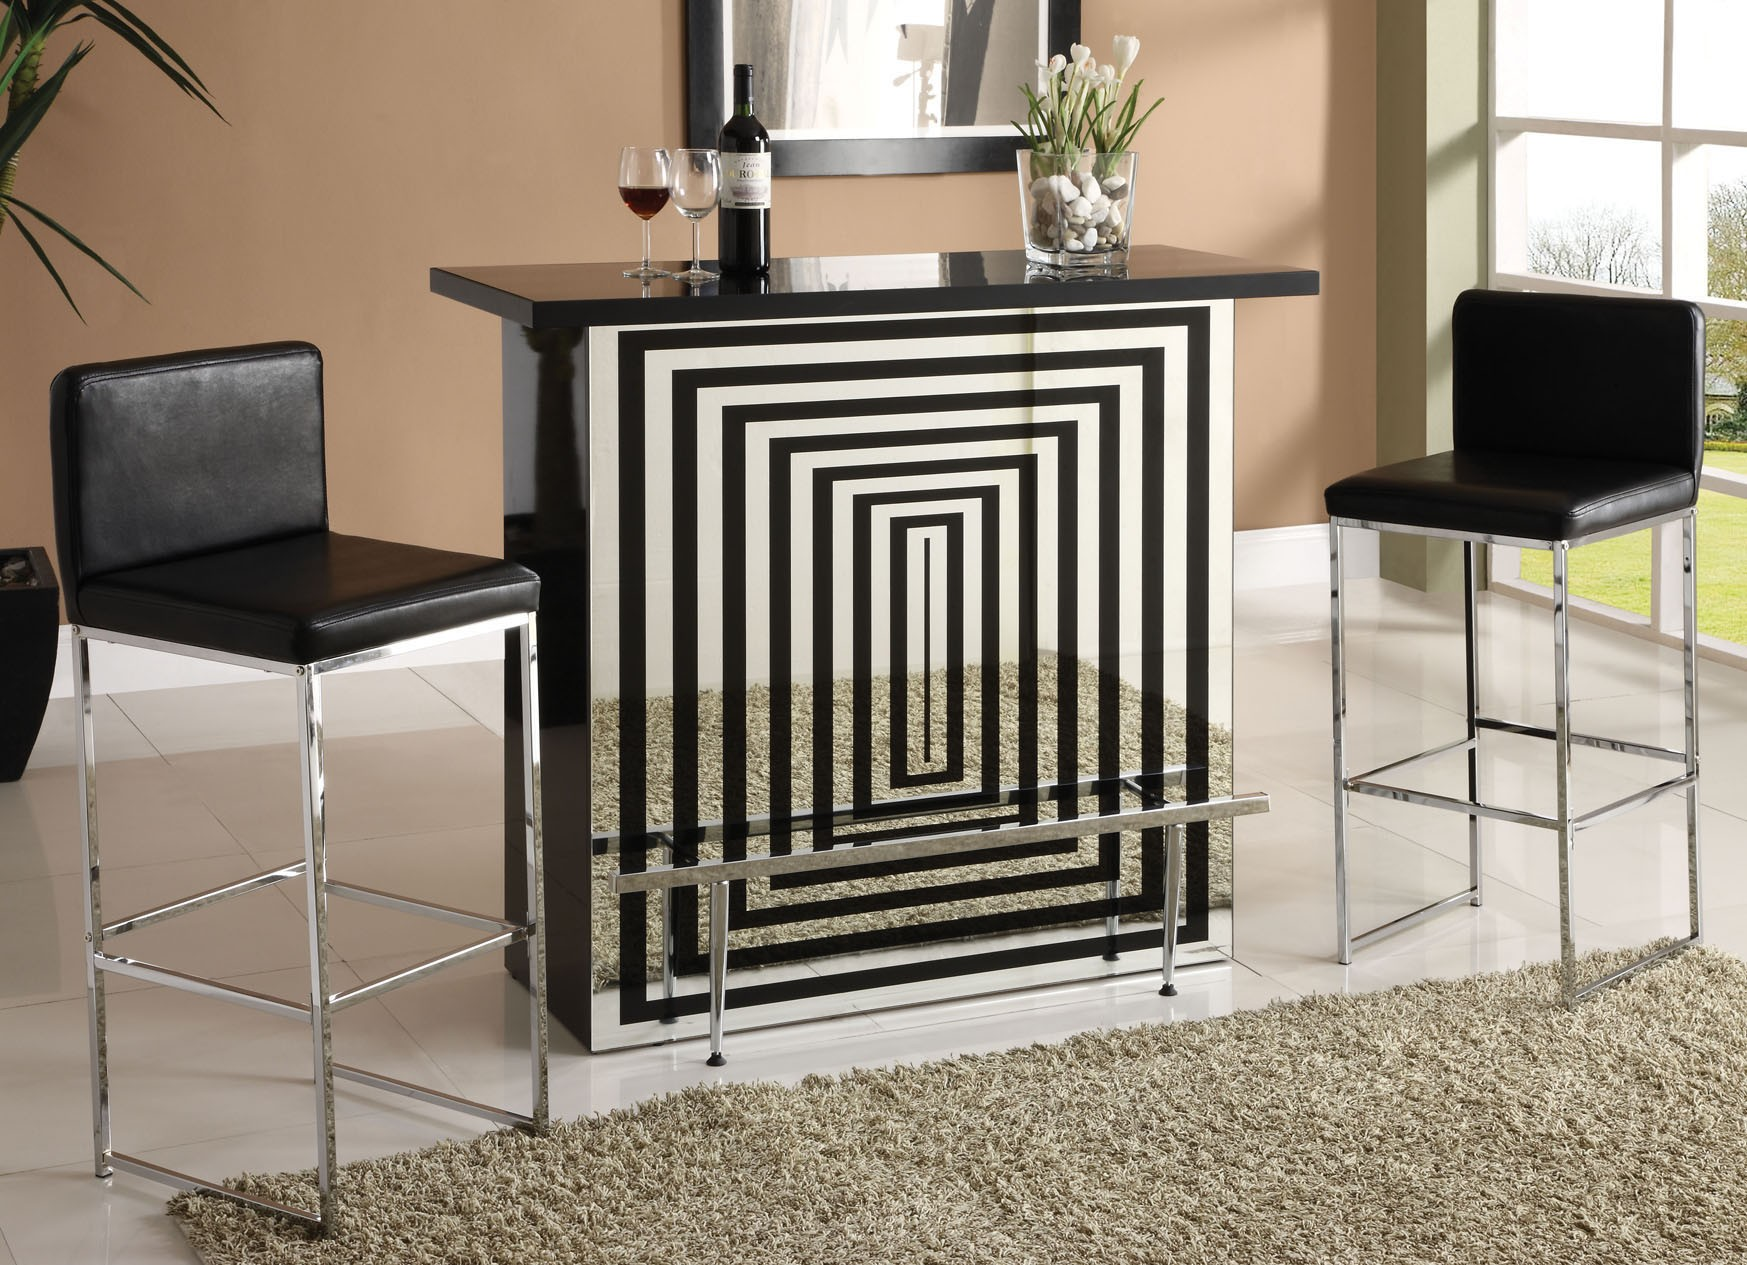 Acme Furniture  Versailles Bone White End Table  82124  Acme Endearing Acme Dining Room Set Inspiration Design